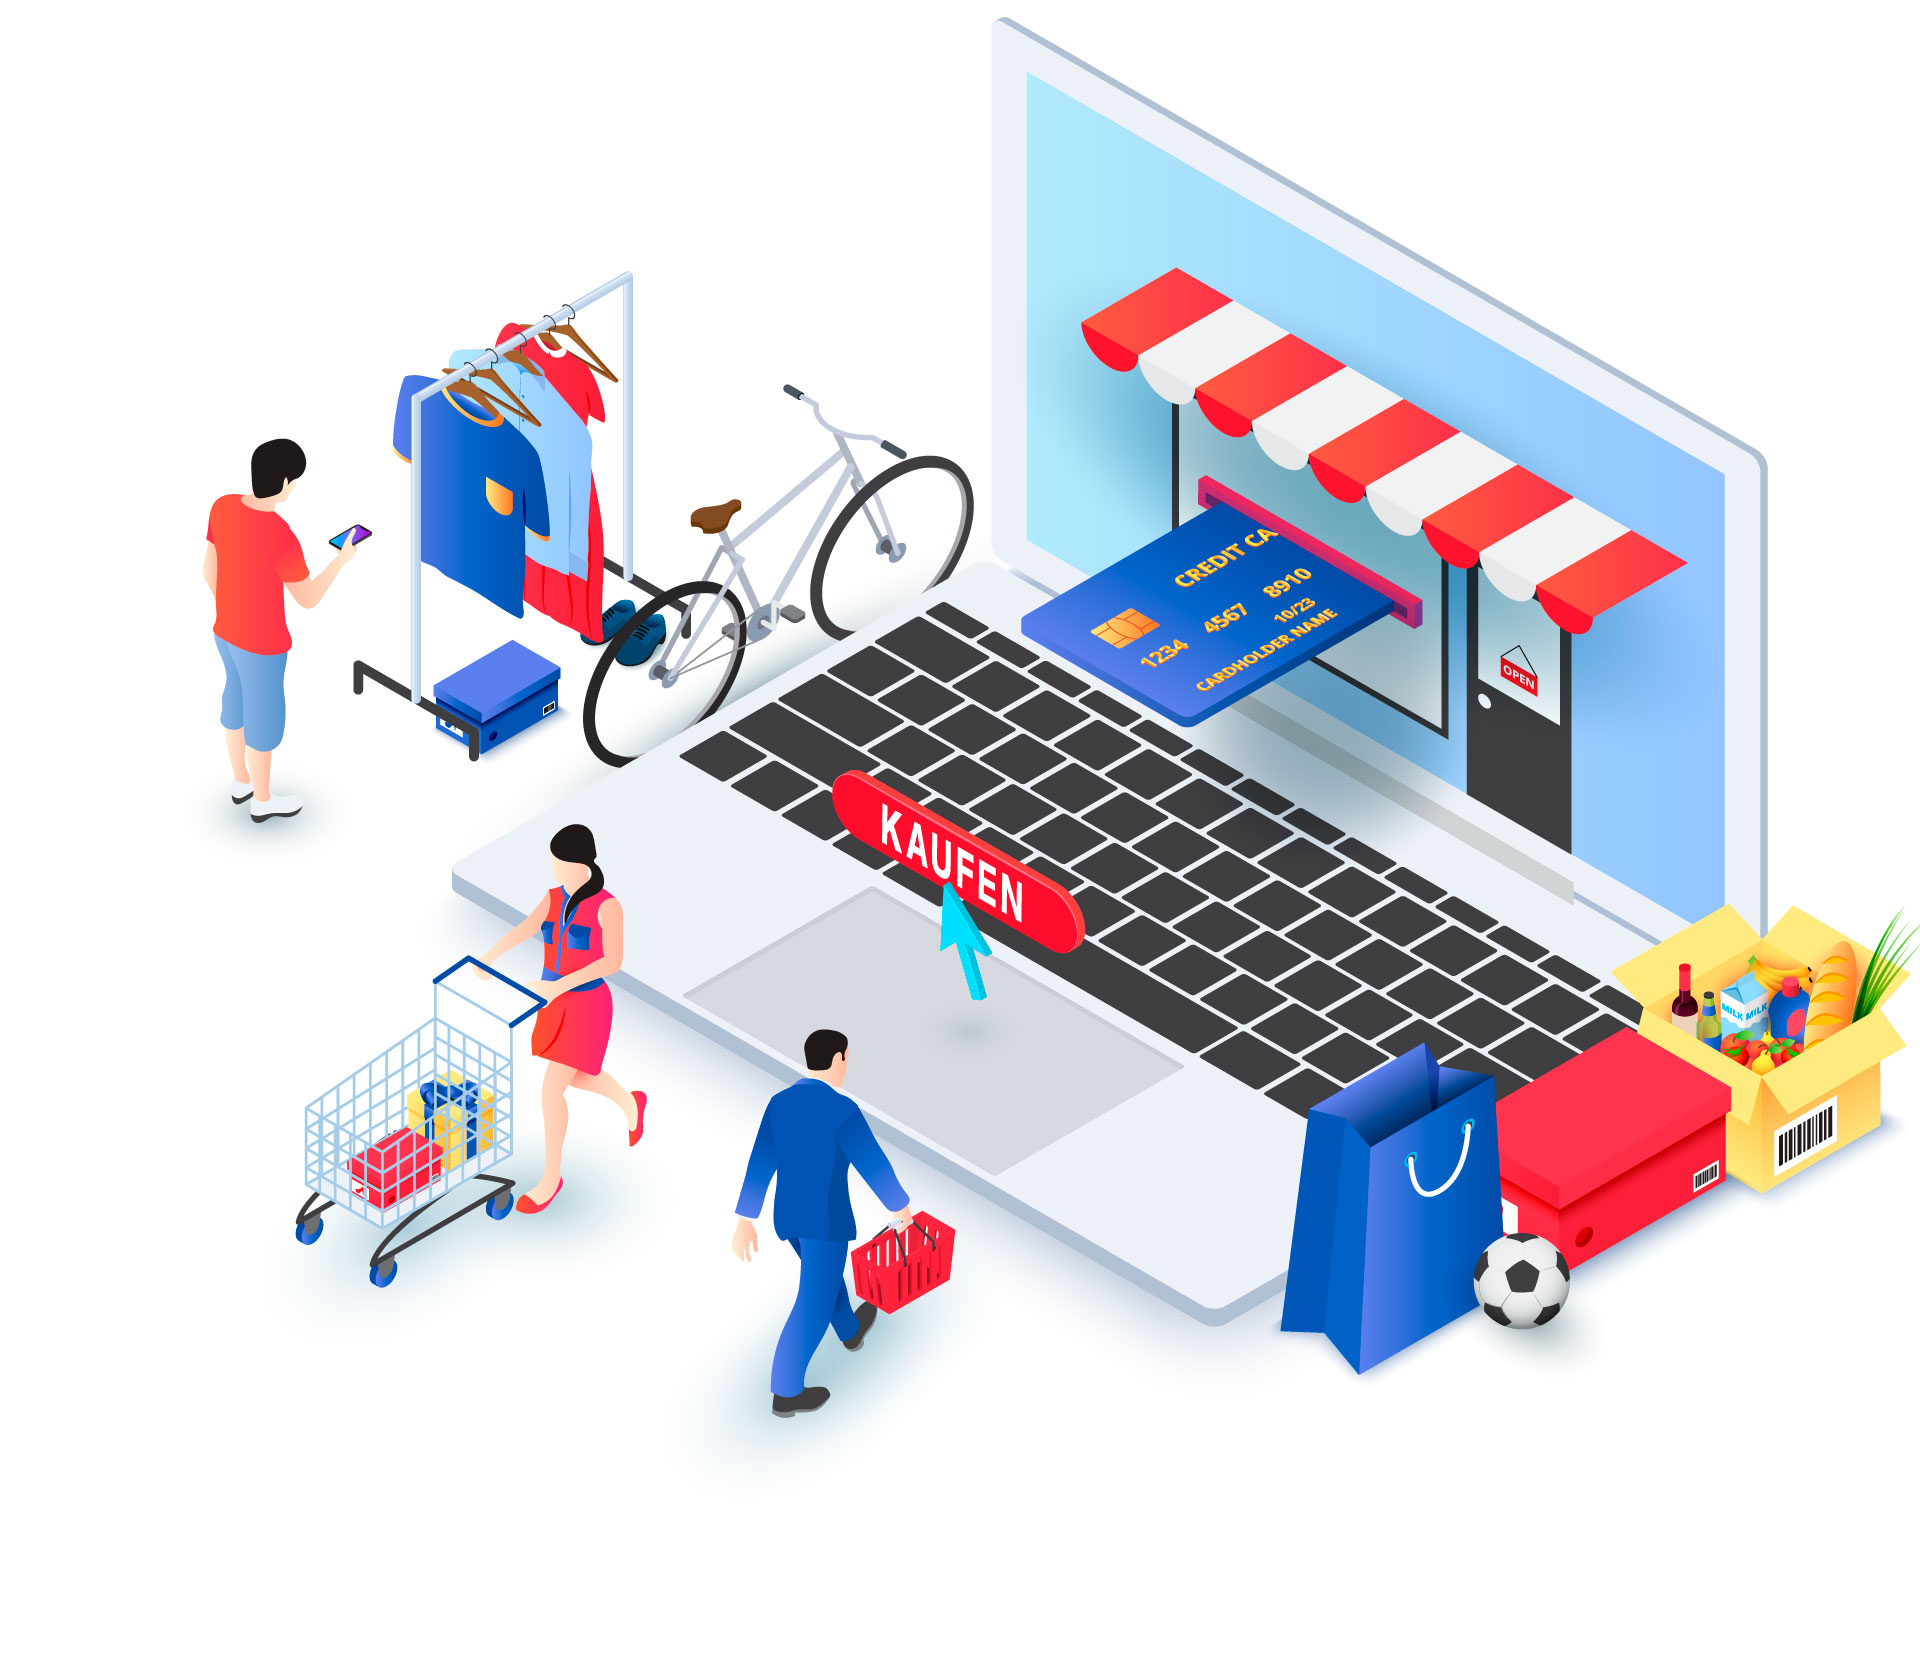 Onlineshop-Illustration